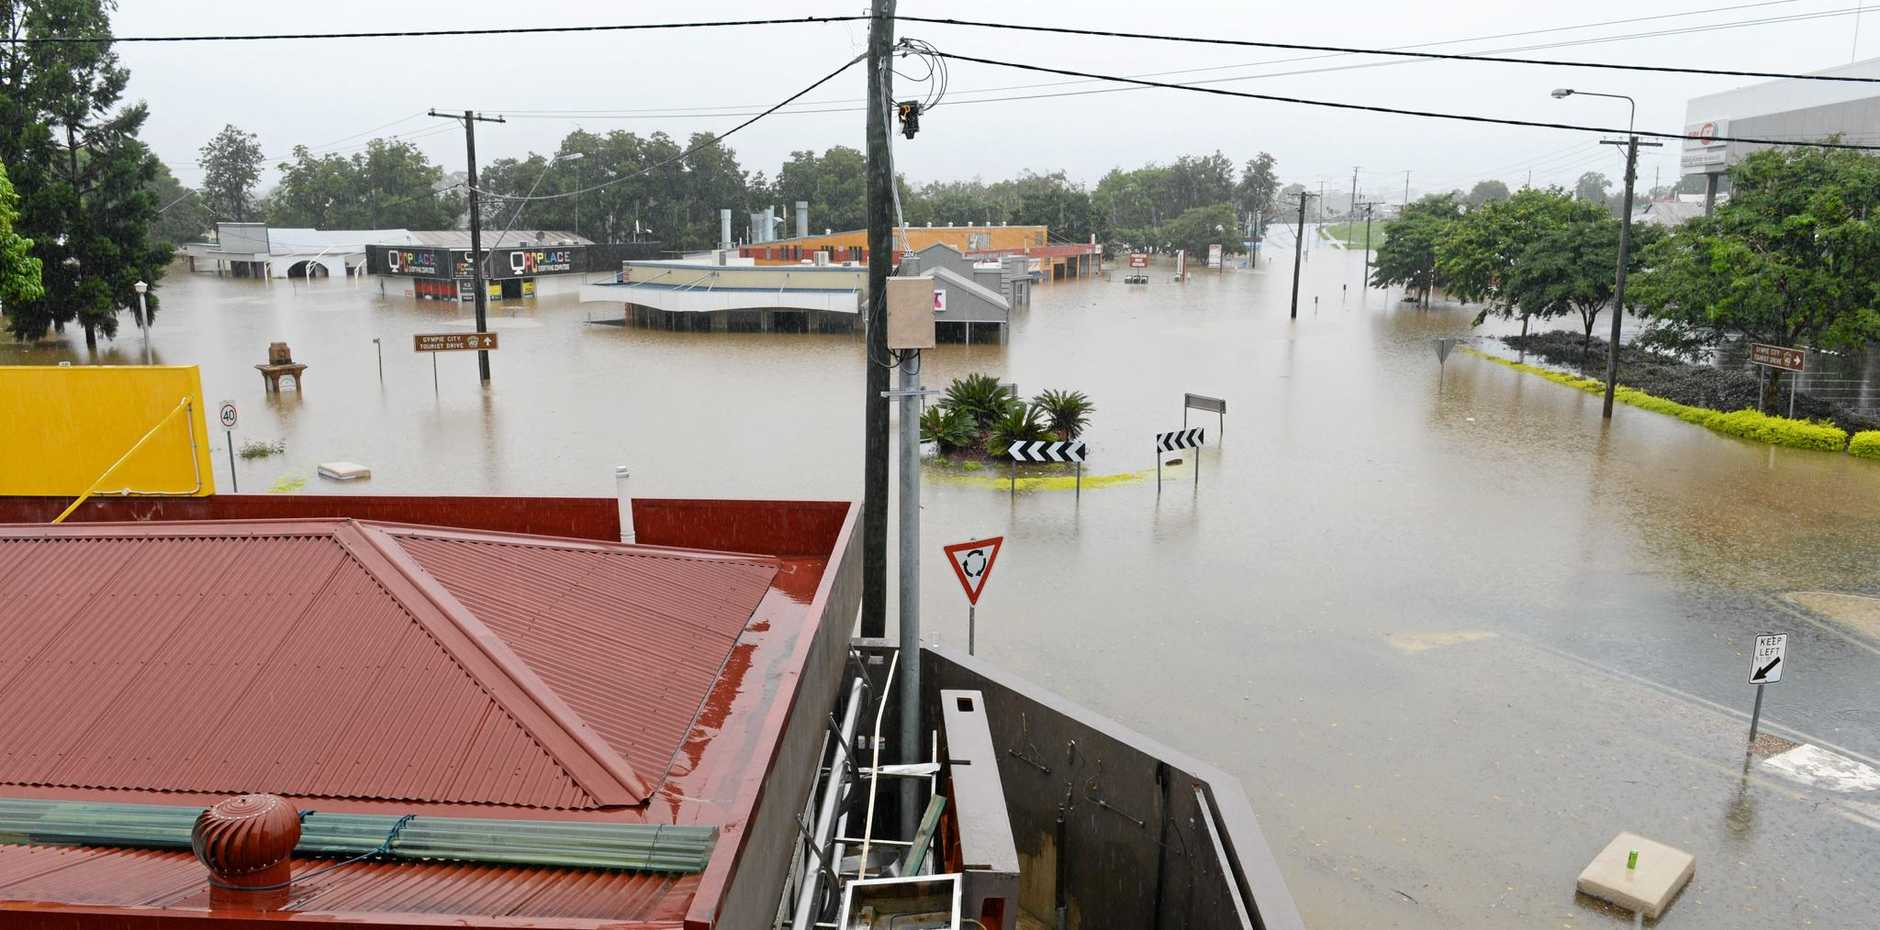 INUNDATED: Gympie's CBD under water in the 2013 flood.